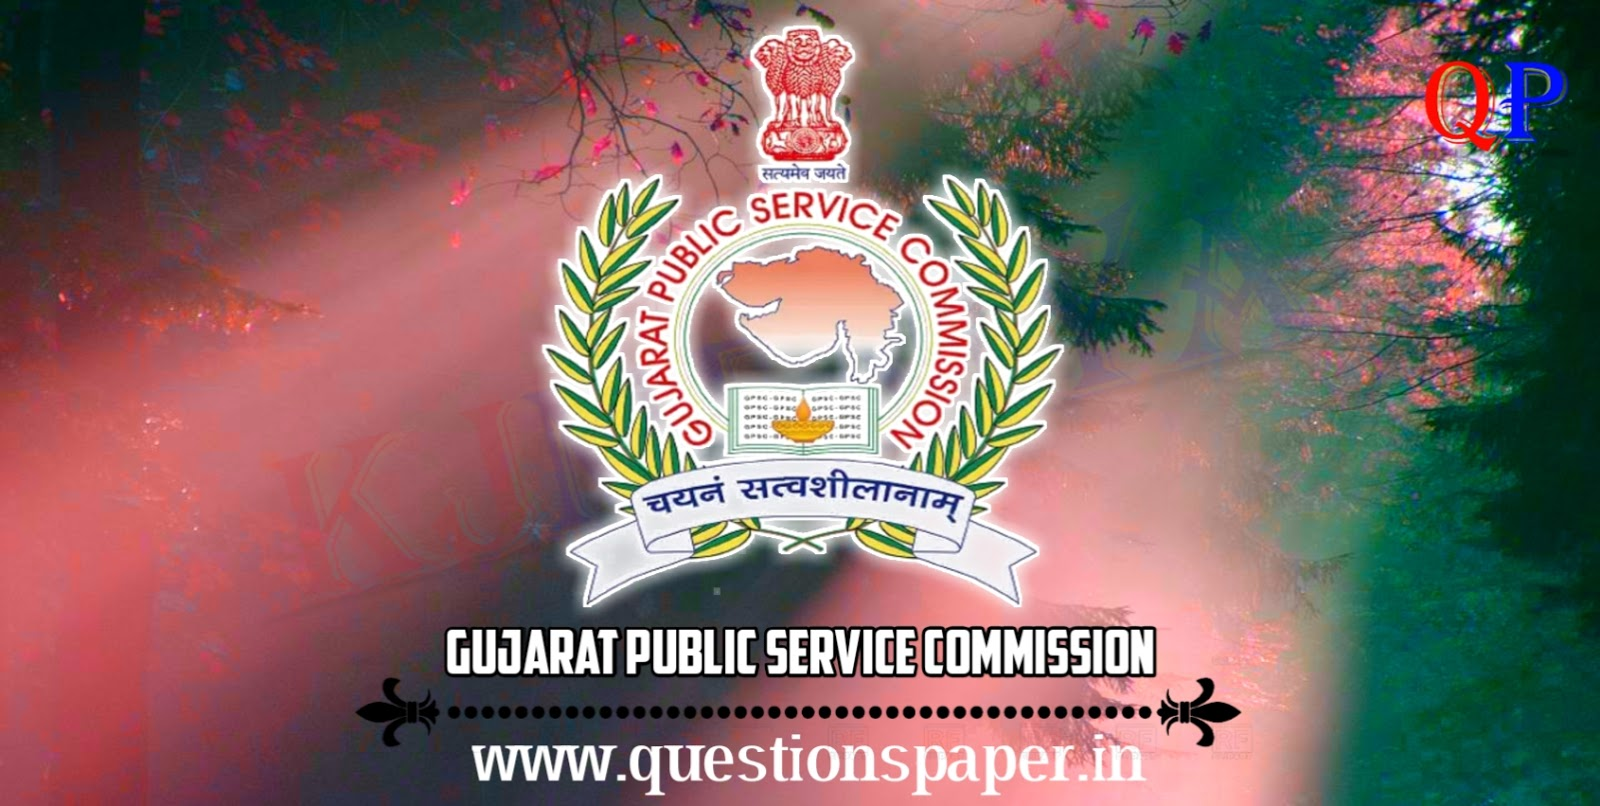 GPSC Class 1 & 2 (Advt. No. GPSC/201819/40) Main Exam Question Papers (24-02-2019)